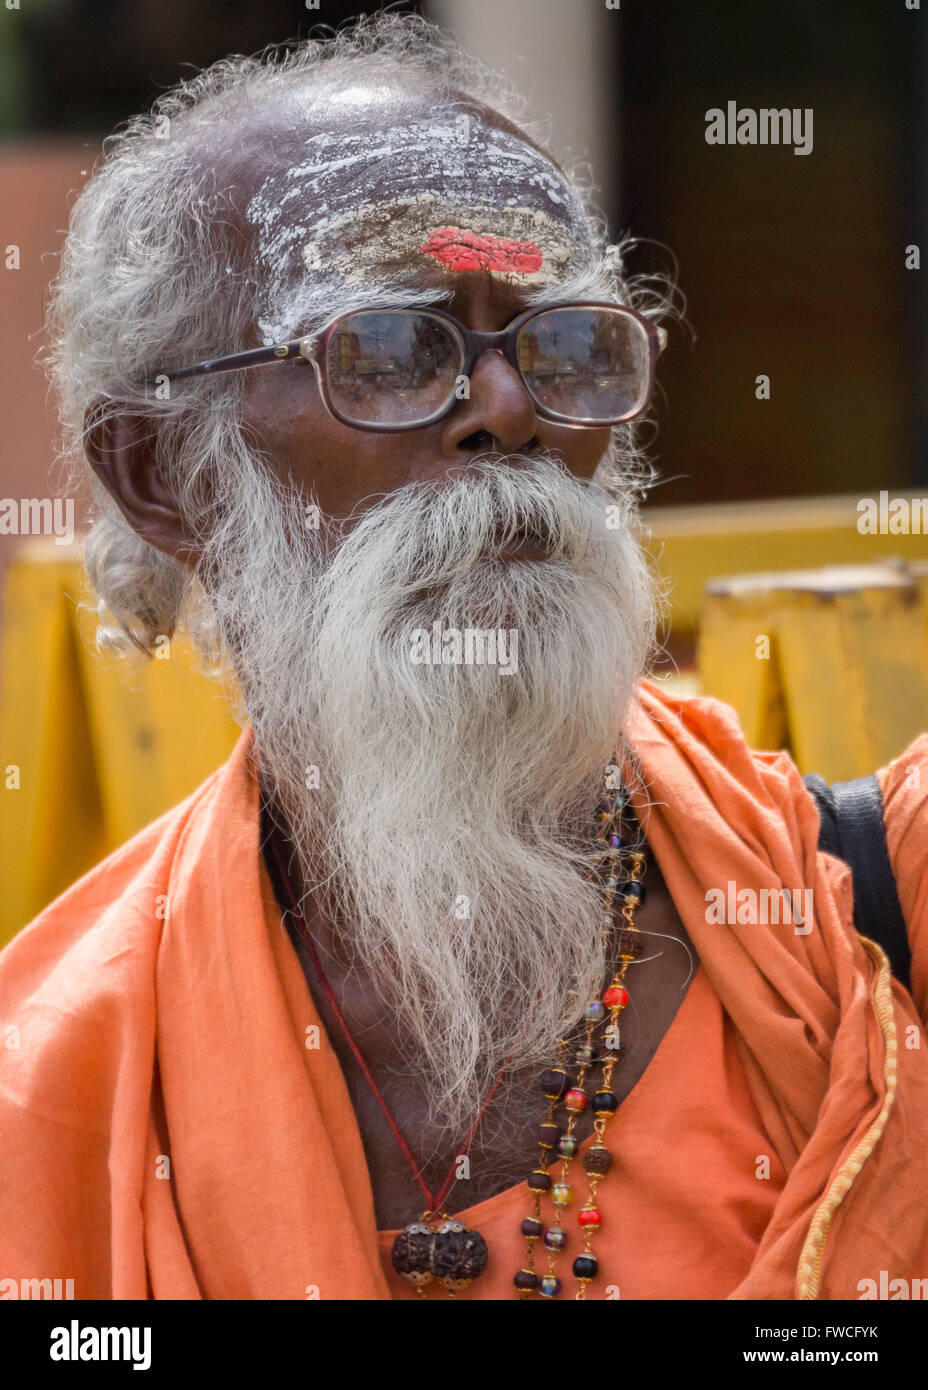 Trichy, India - October 15, 2013: Old, graying sadhu with beard and glasses. Wears orange garb and has his forehead - Stock Image